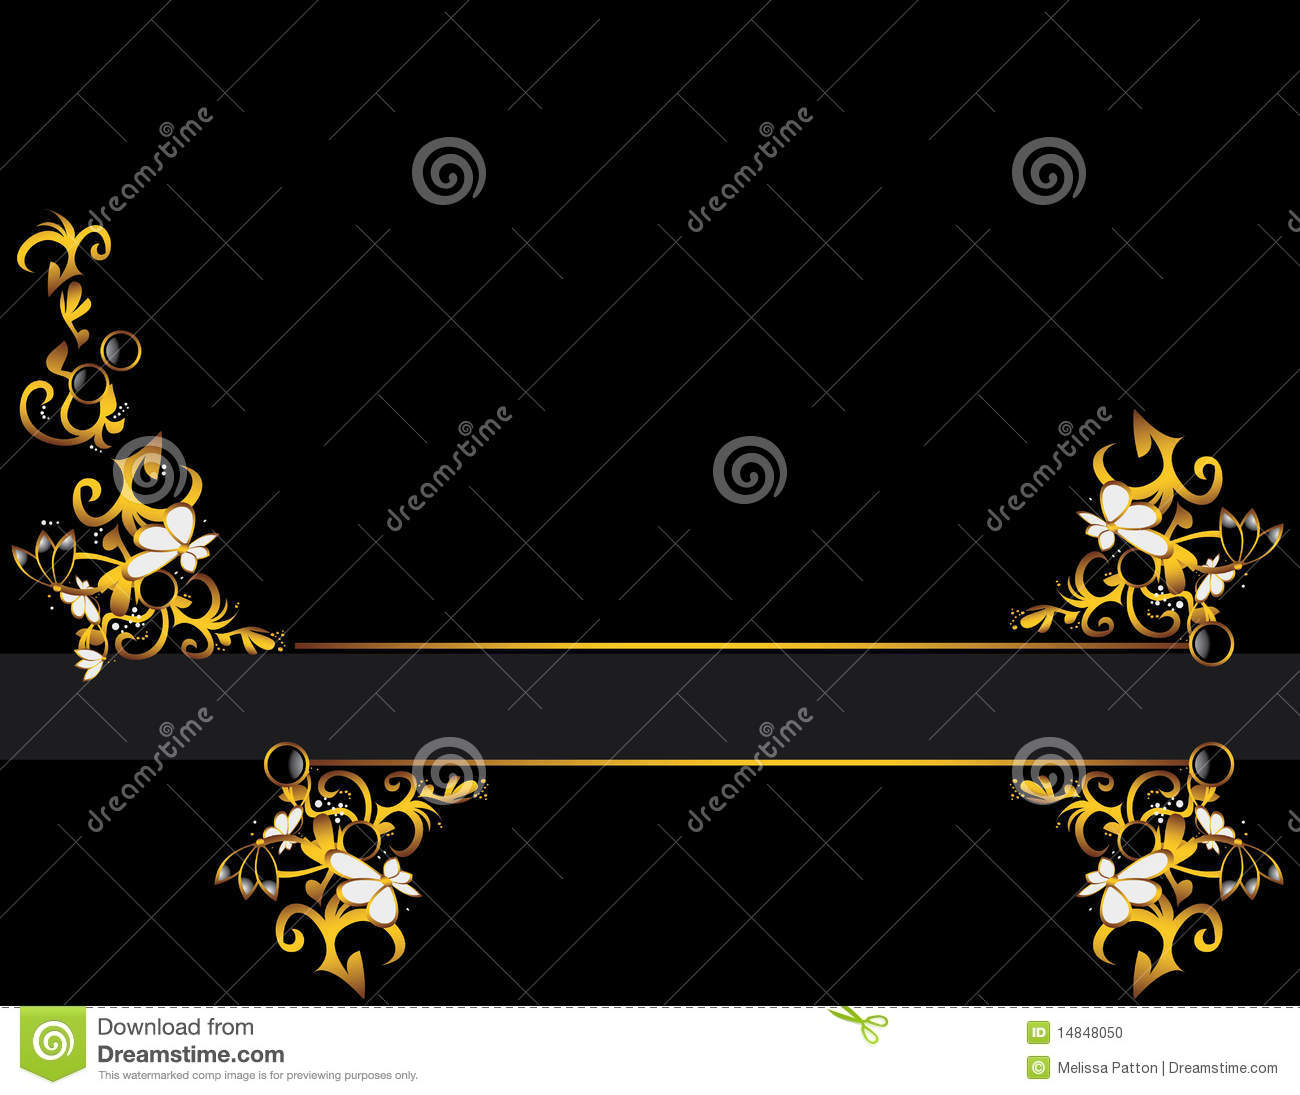 Black Gold Gray Background Design Stock Photo - Image ...